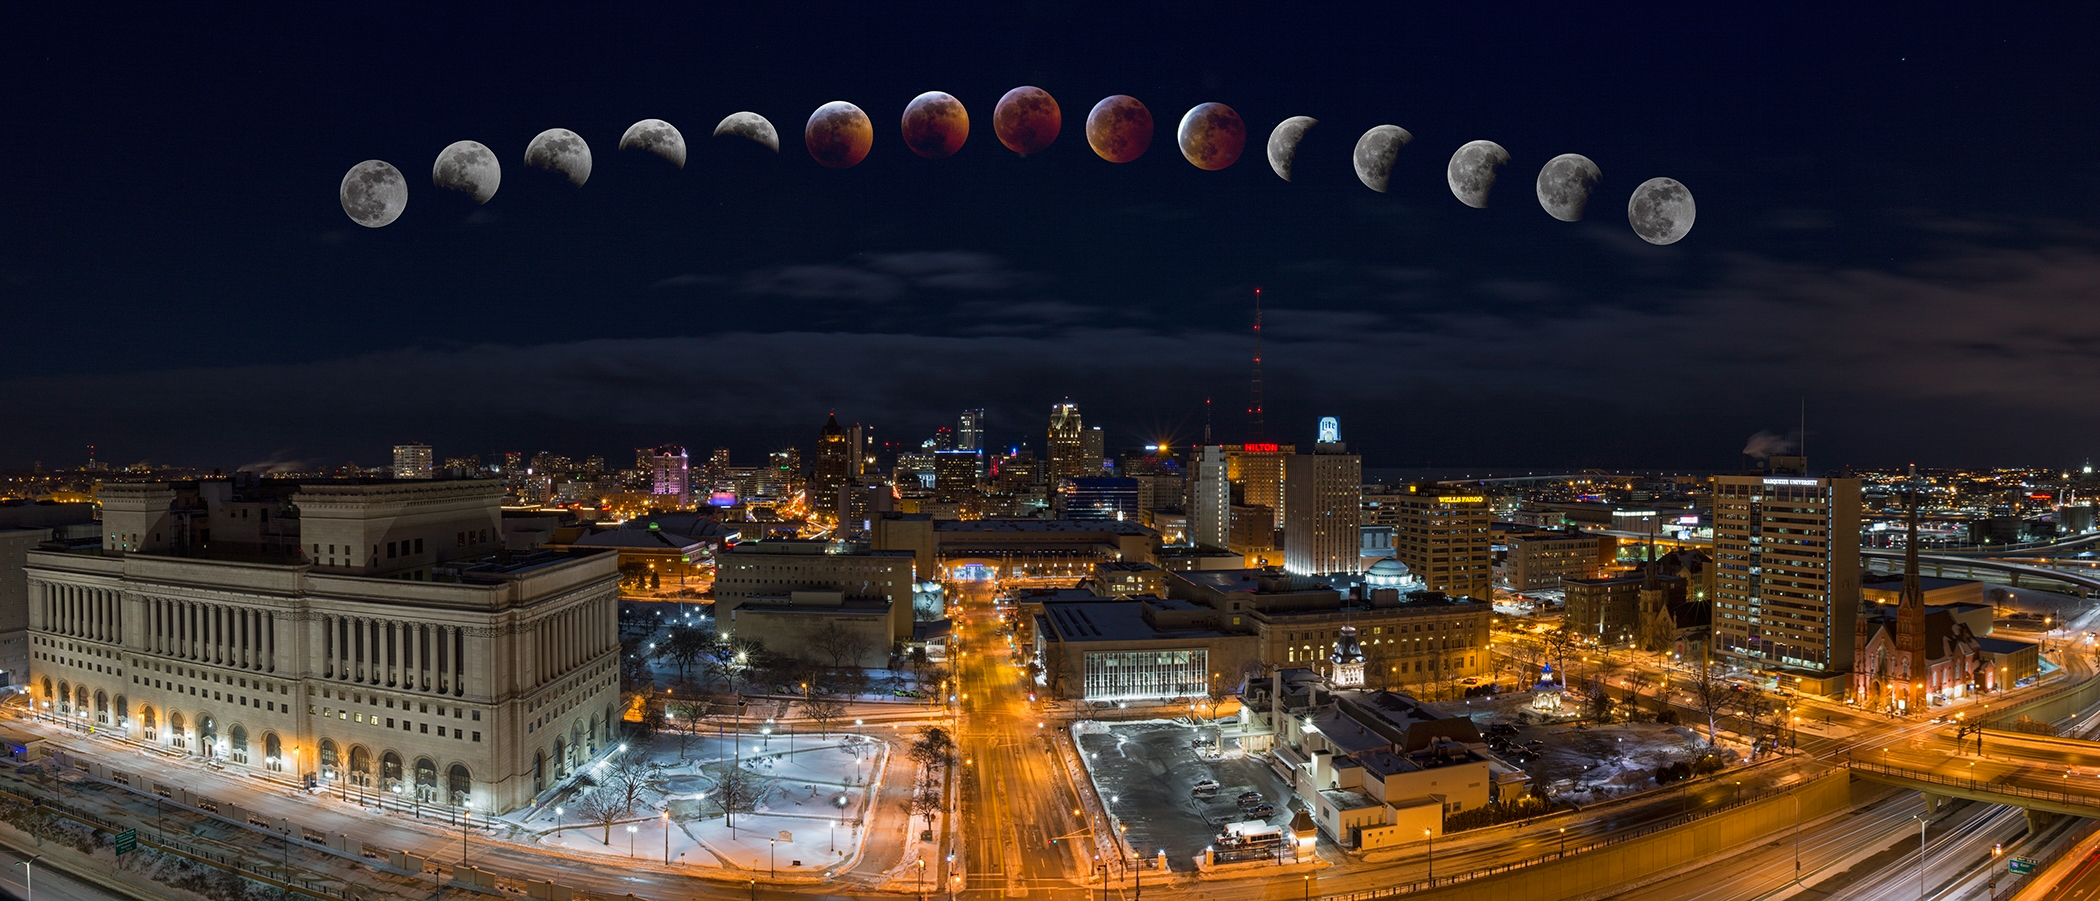 OST~Eclipse over Milwaukee~Vinay Sinha.jpg